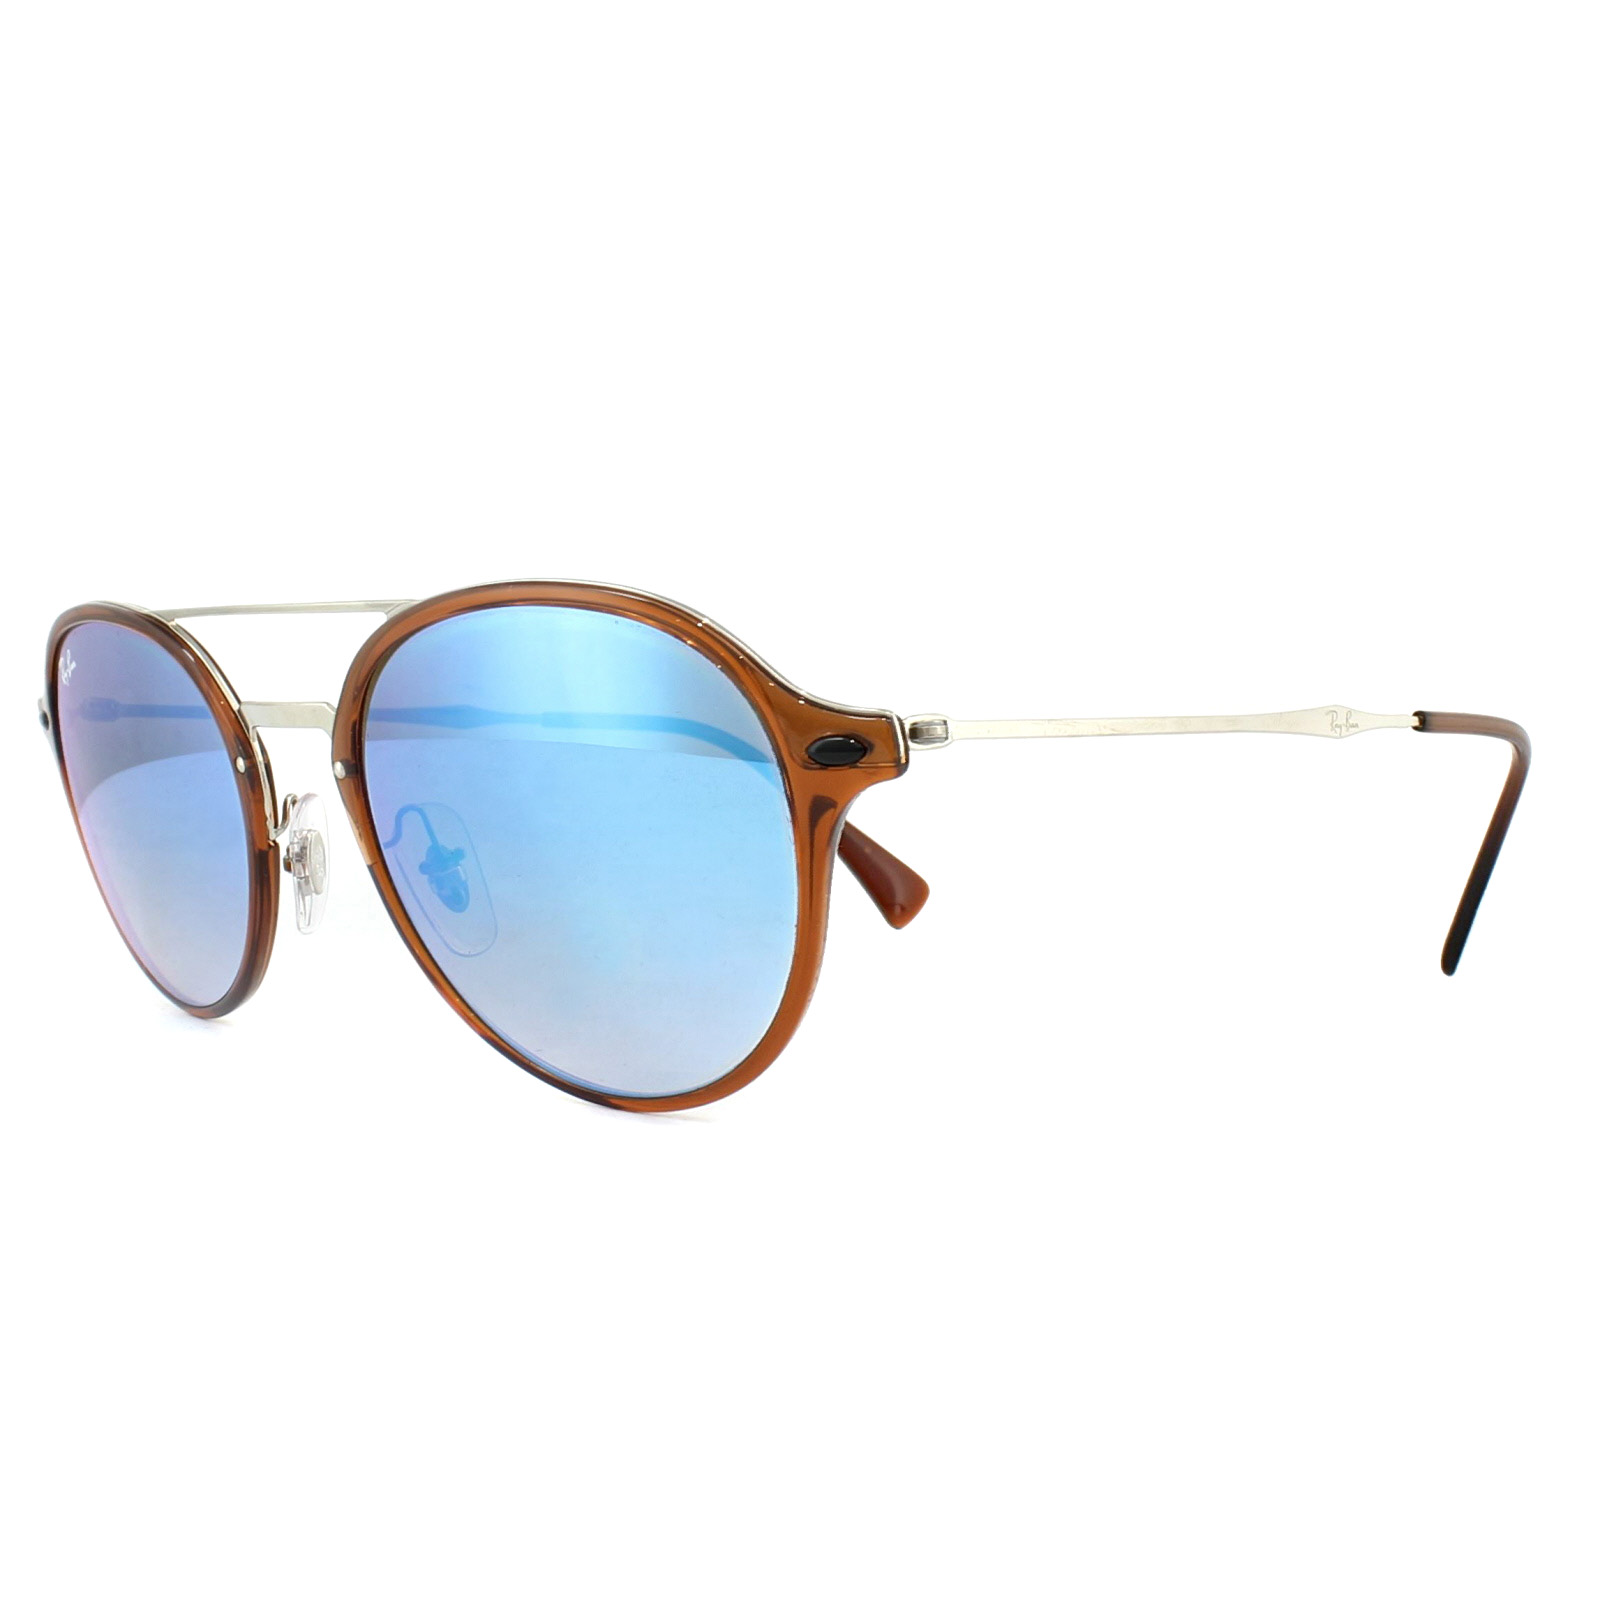 d670ded80 Sentinel Ray-Ban Sunglasses 4287 604/B7 Brown Silver Blue Gradient Mirror